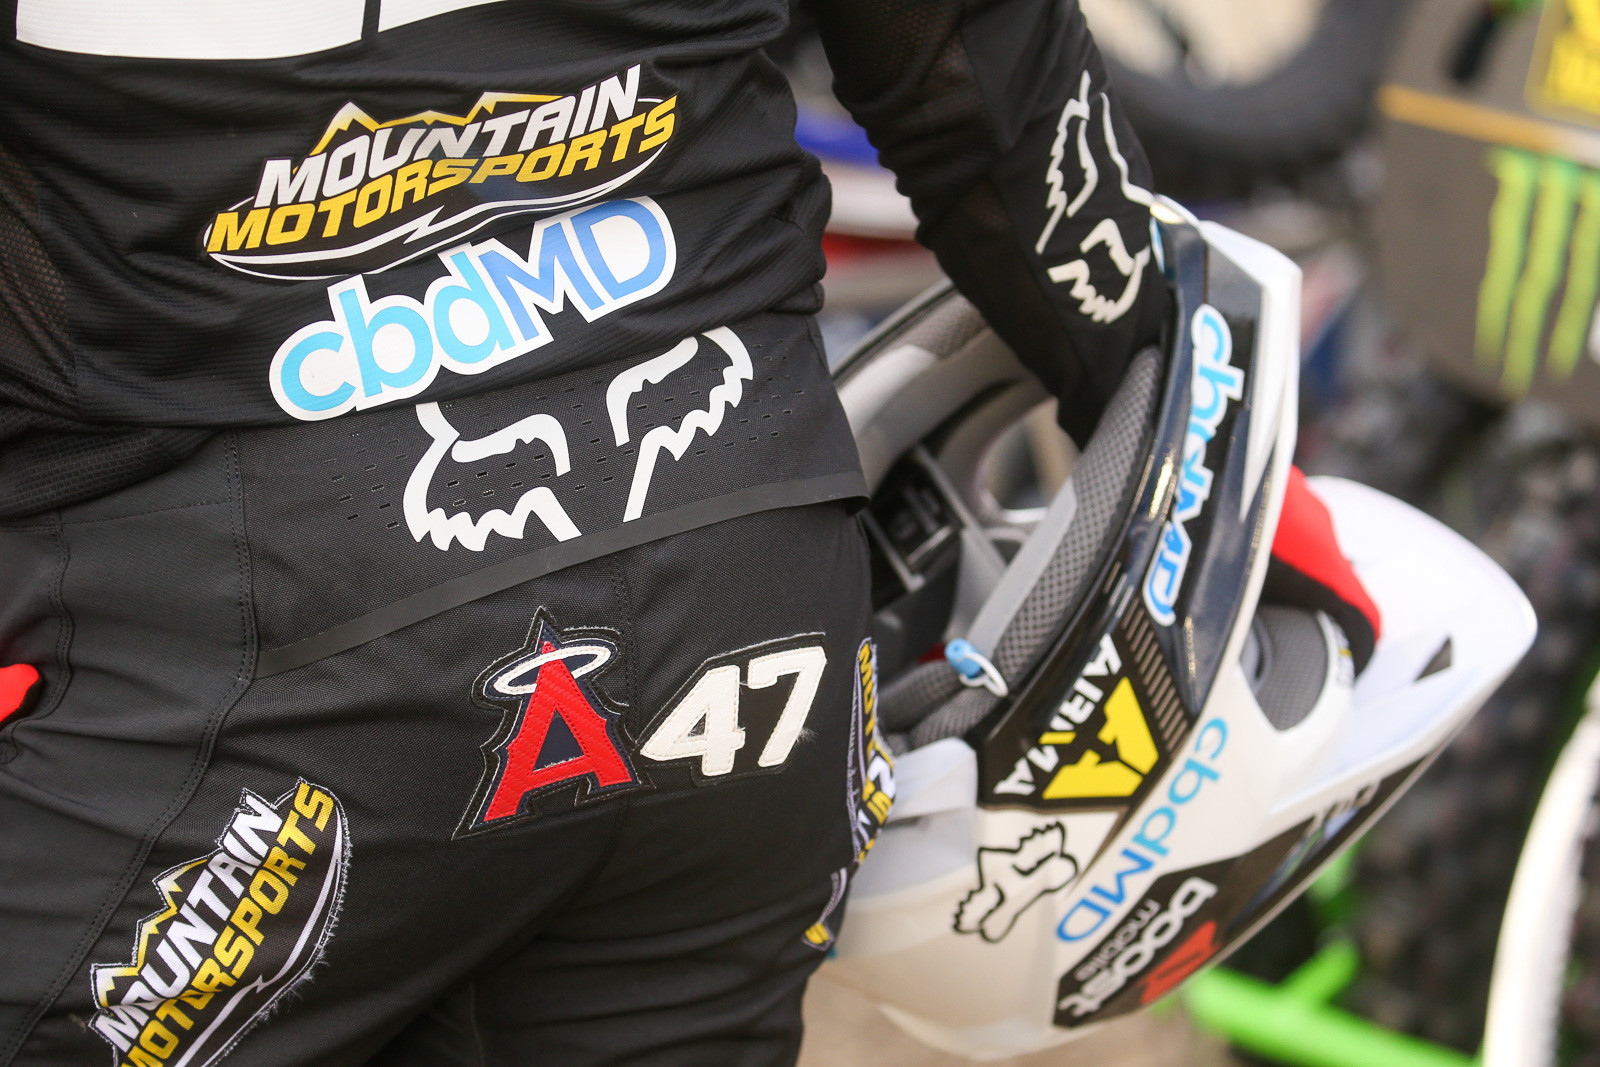 A1 or A2? No way. This is the 47th Anaheim race of Chad Reed's career.